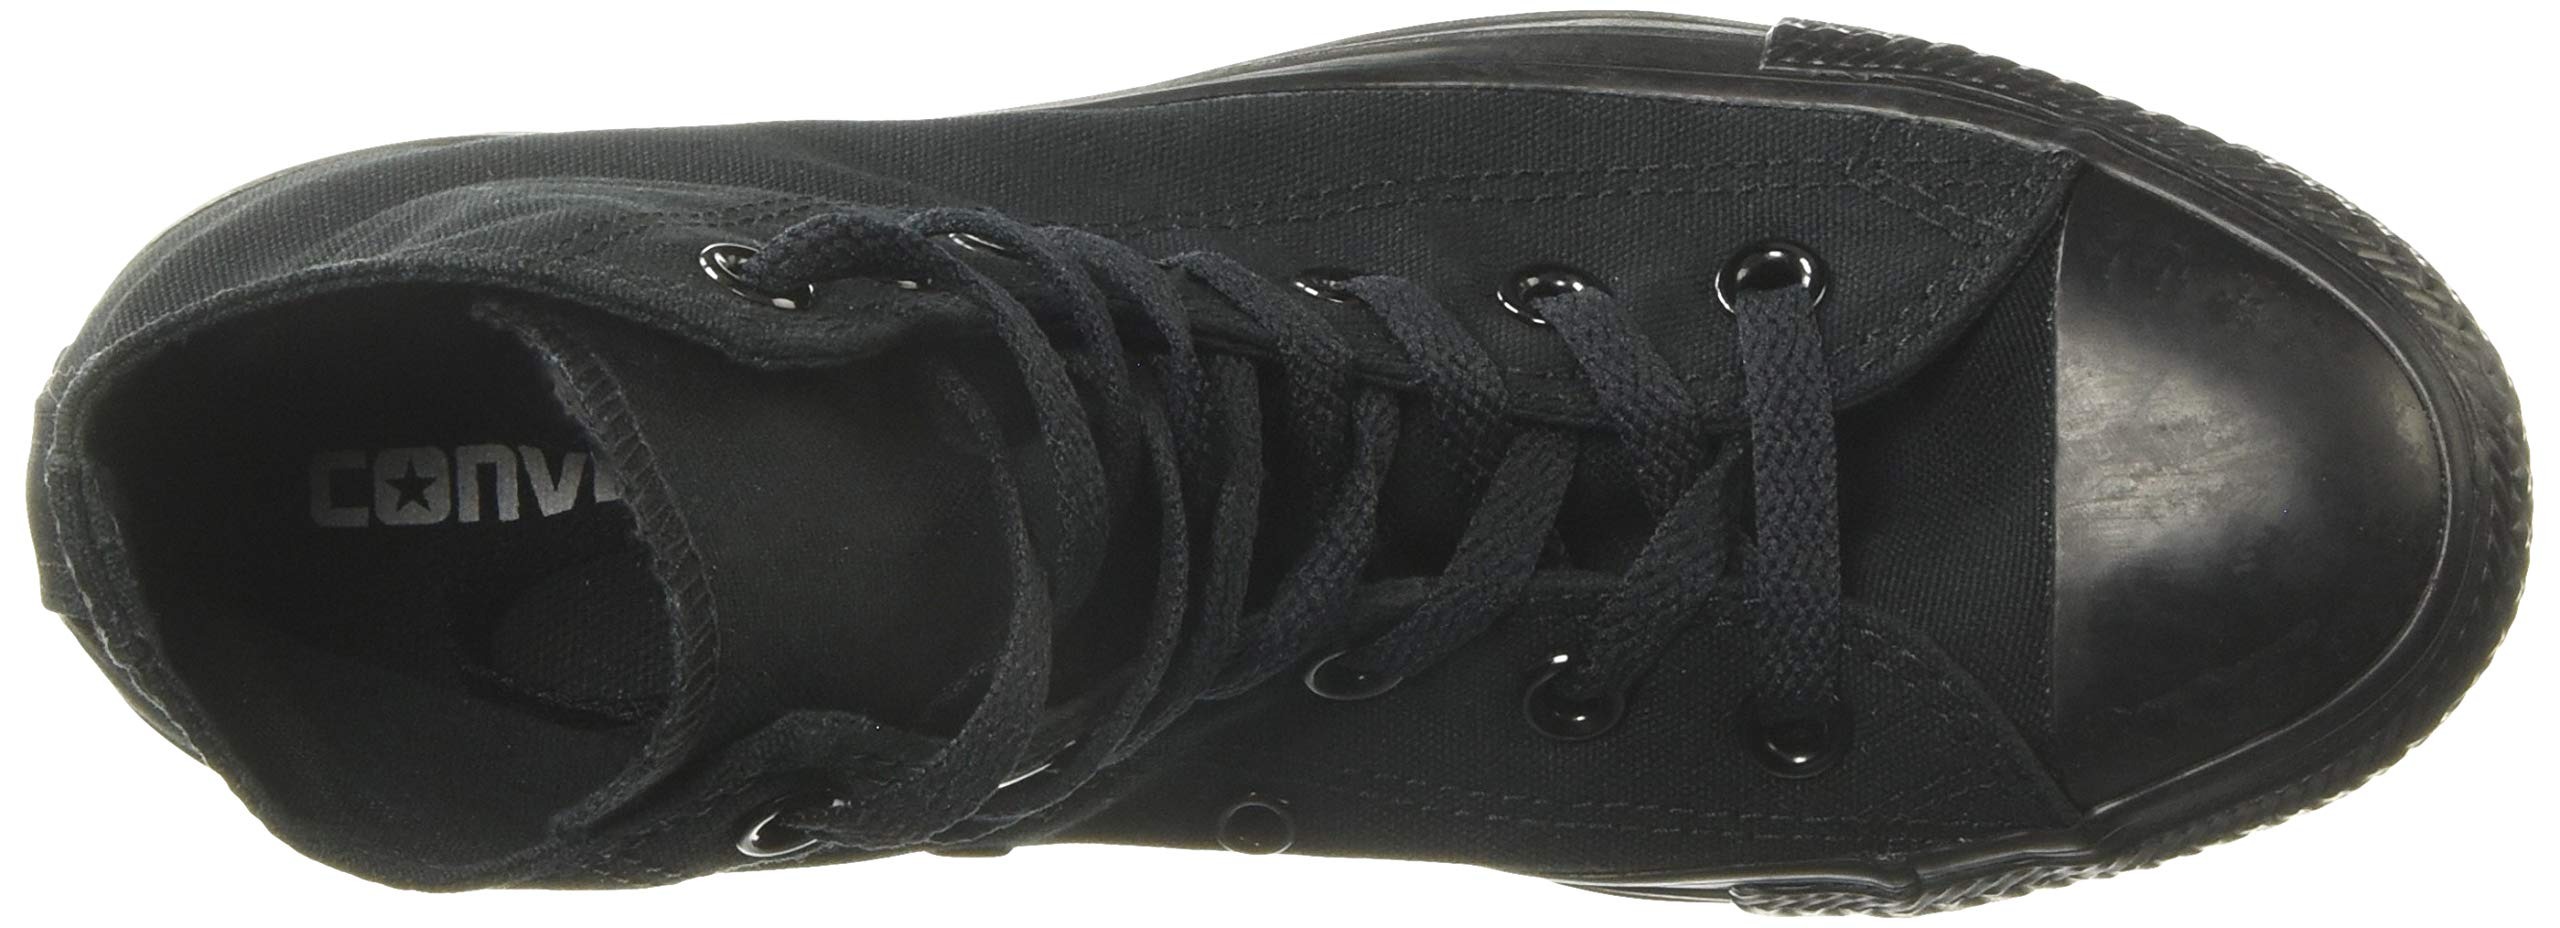 Converse Chuck Taylor All Star High Top Black/Black 9 D(M) US by Converse (Image #8)